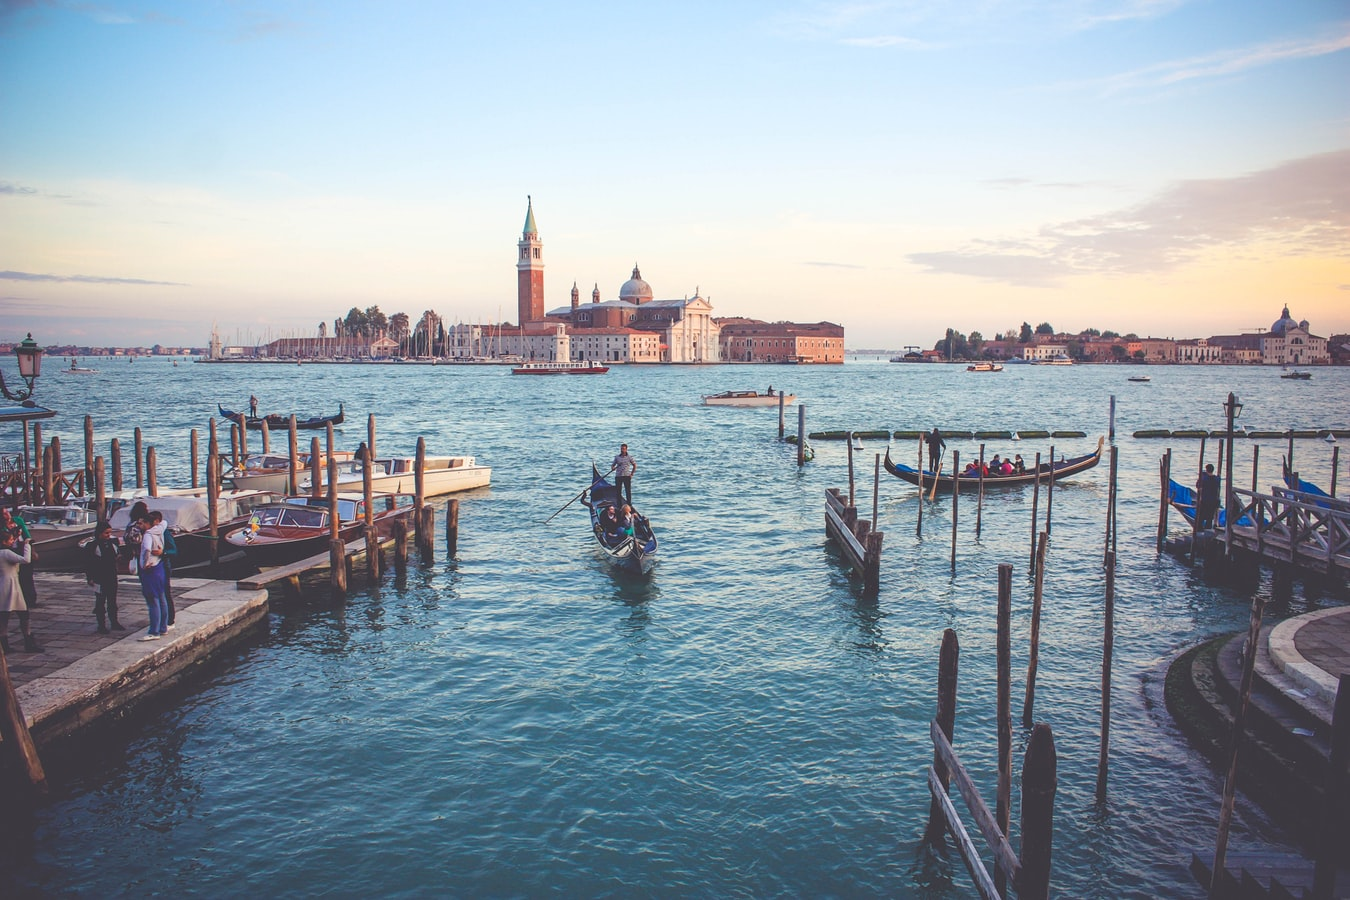 Venice airports: Marco Polo and Treviso / Book your ticket and search for cheap flights.